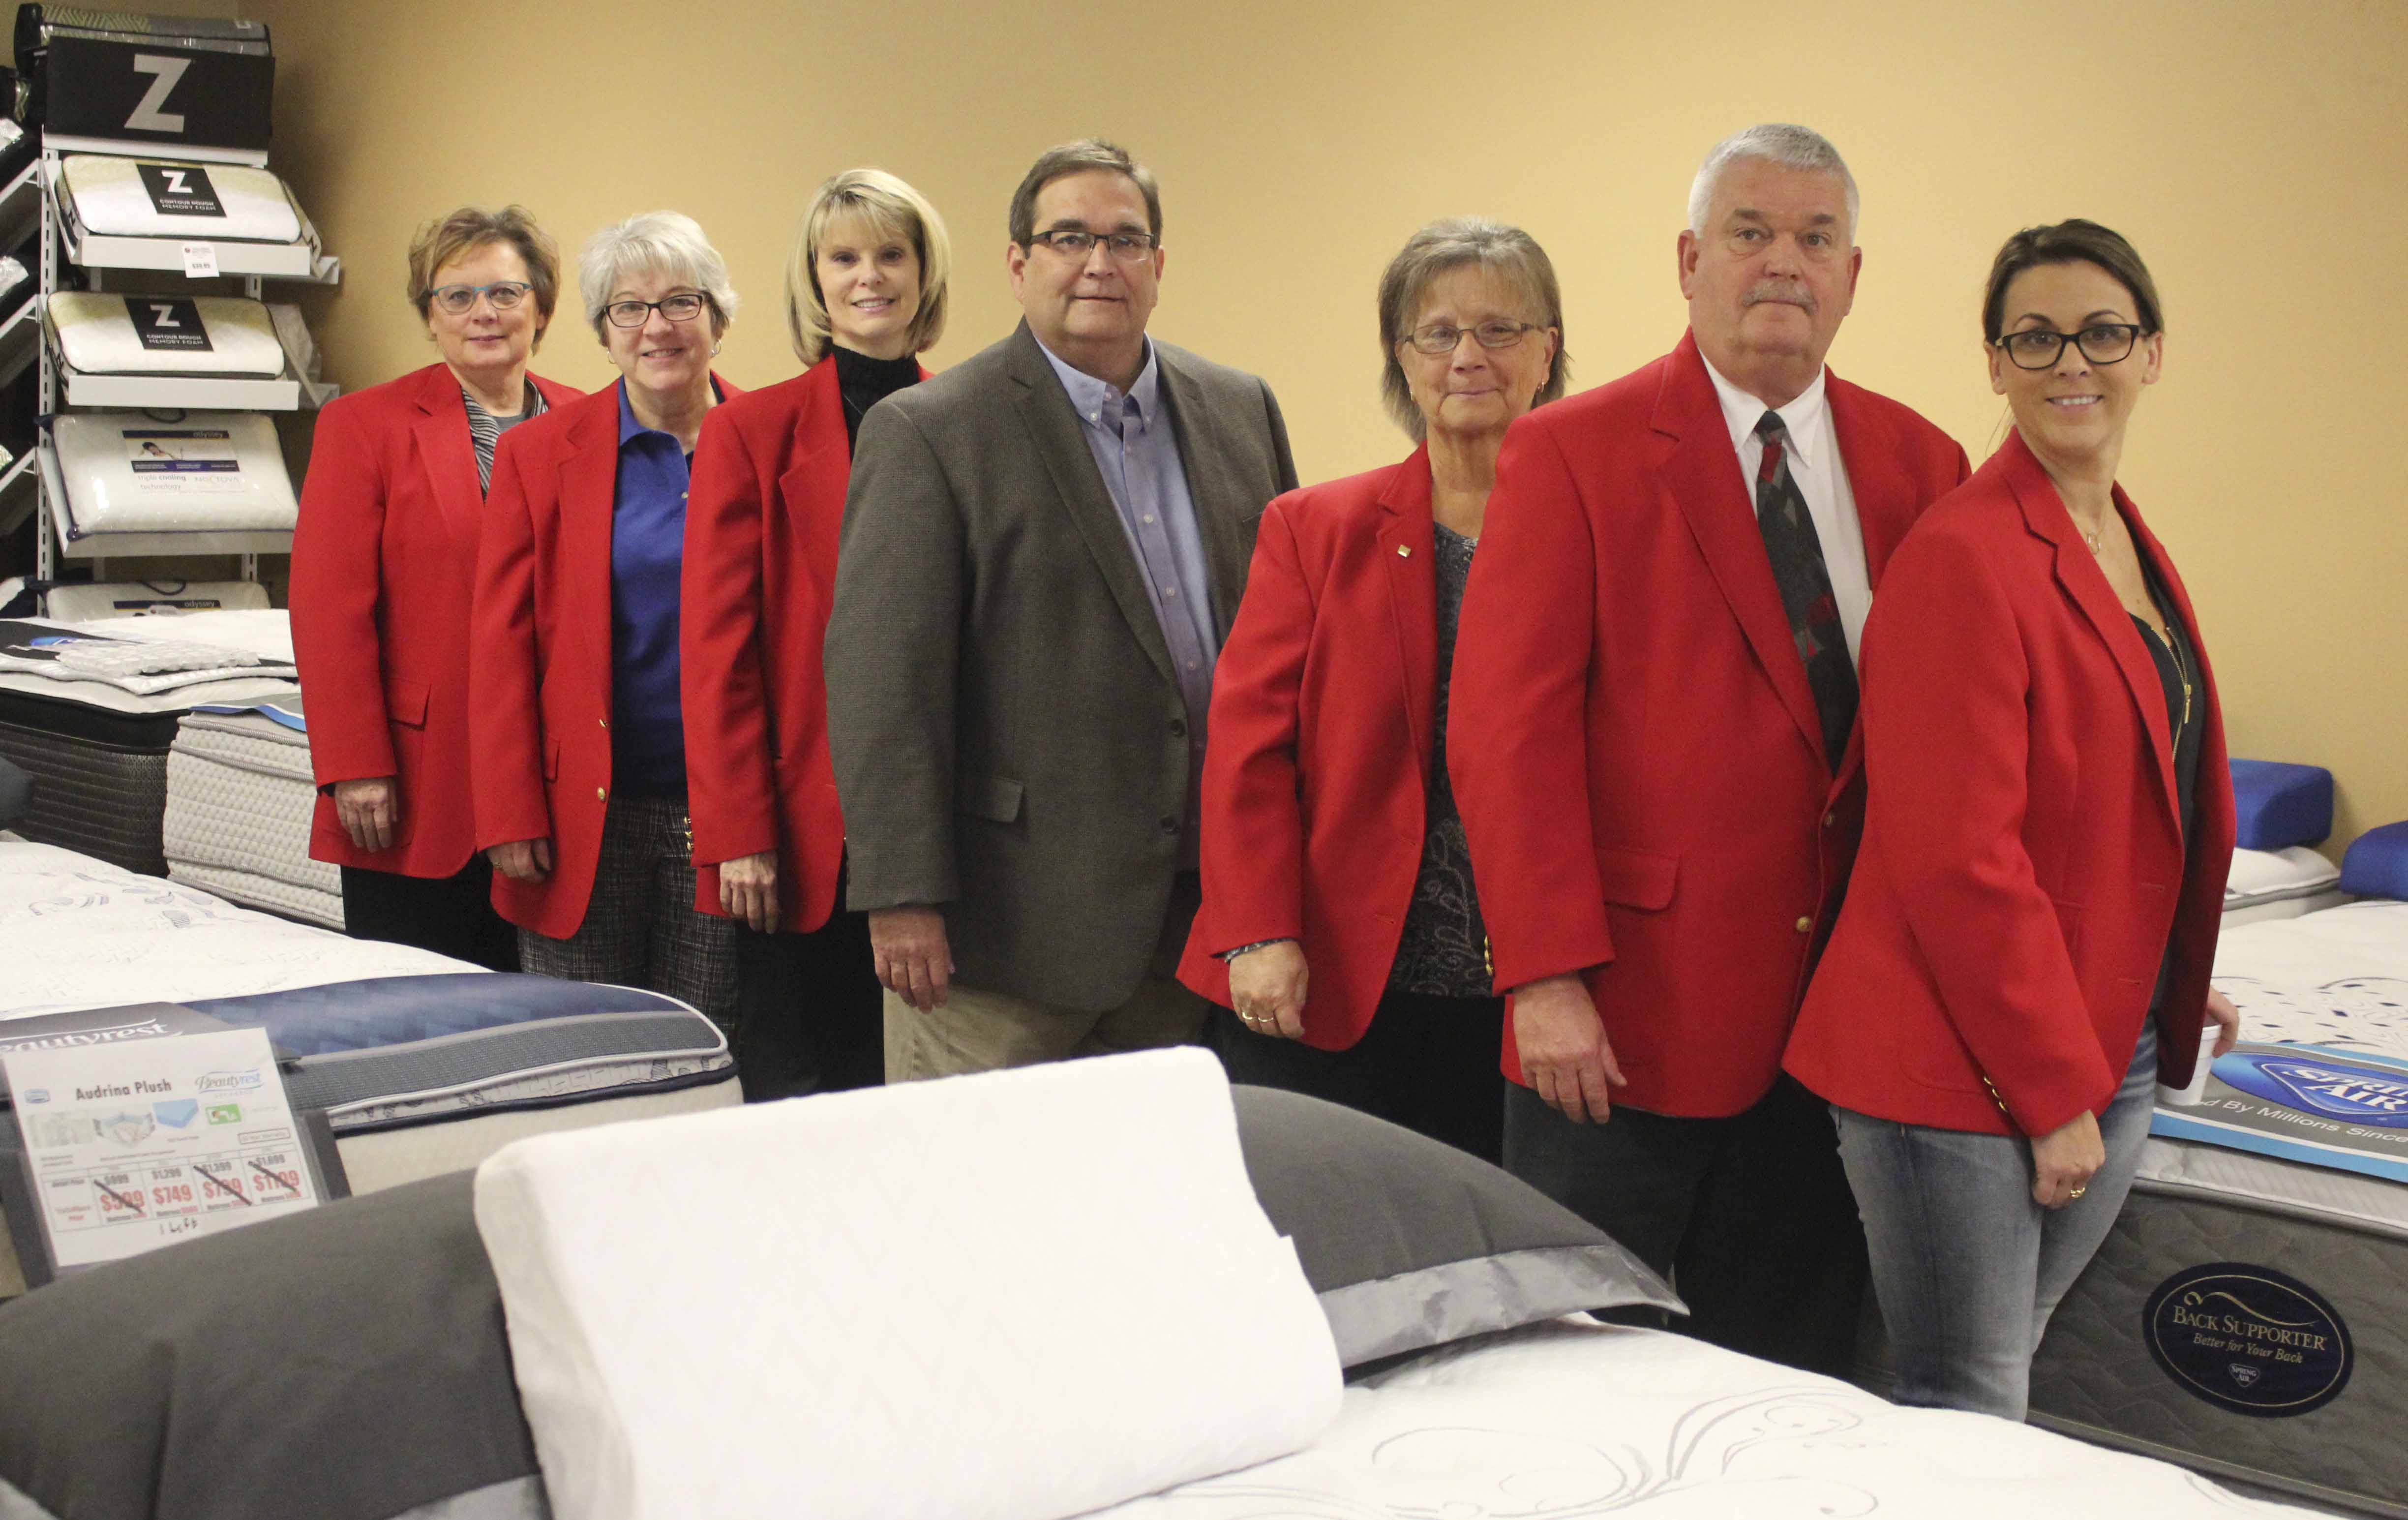 The Monticello Ambassadors visited Jim Flynn (center), new owner of ValuMaxx Mattress on W. First St., on Nov. 2. From left are Ambassadors Suzan Ehlers, Kathy Bone, Cheryl Dirks, owner Jim Flynn, and Ambassadors Sue Ballou, Dave Tabor and Kimberly Kremer. (Photo by Pete Temple)